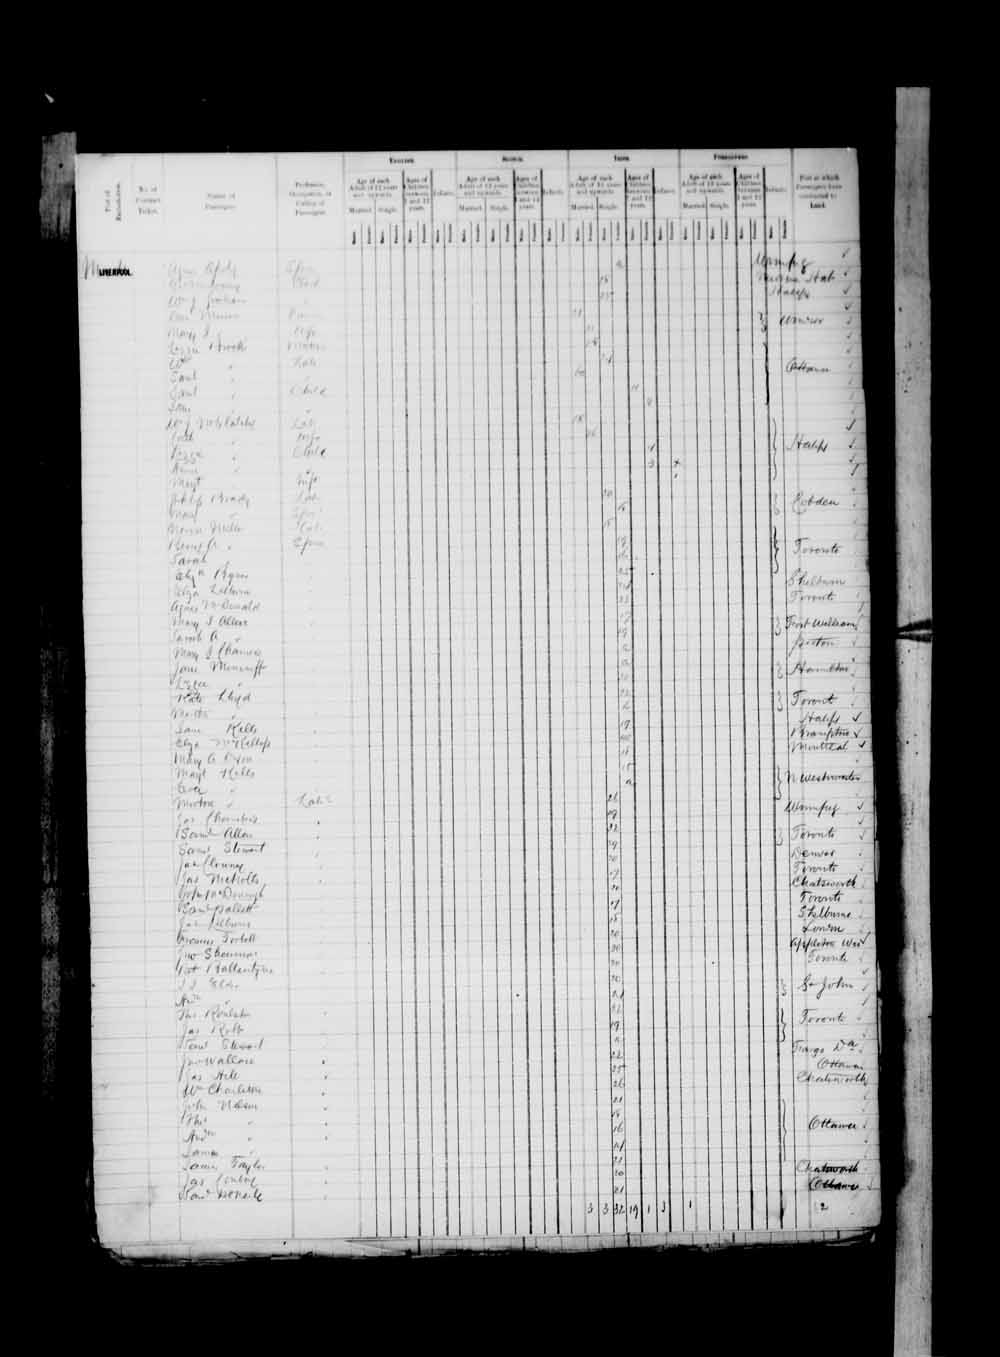 Digitized page of Passenger Lists for Image No.: e003674934